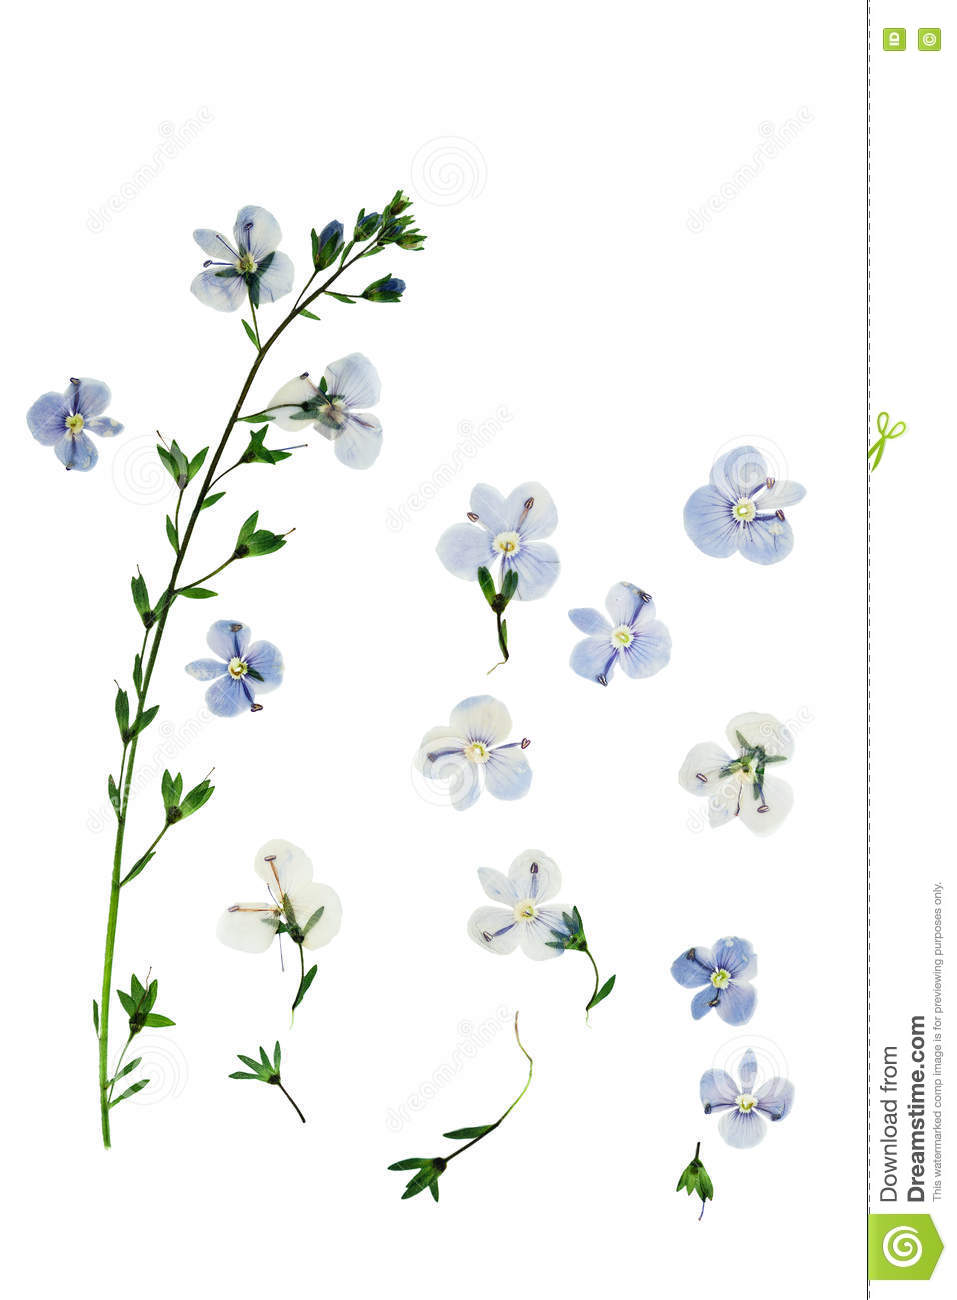 How to scrapbook pressed flowers - Pressed And Dried Flowers Veronica Officinalis